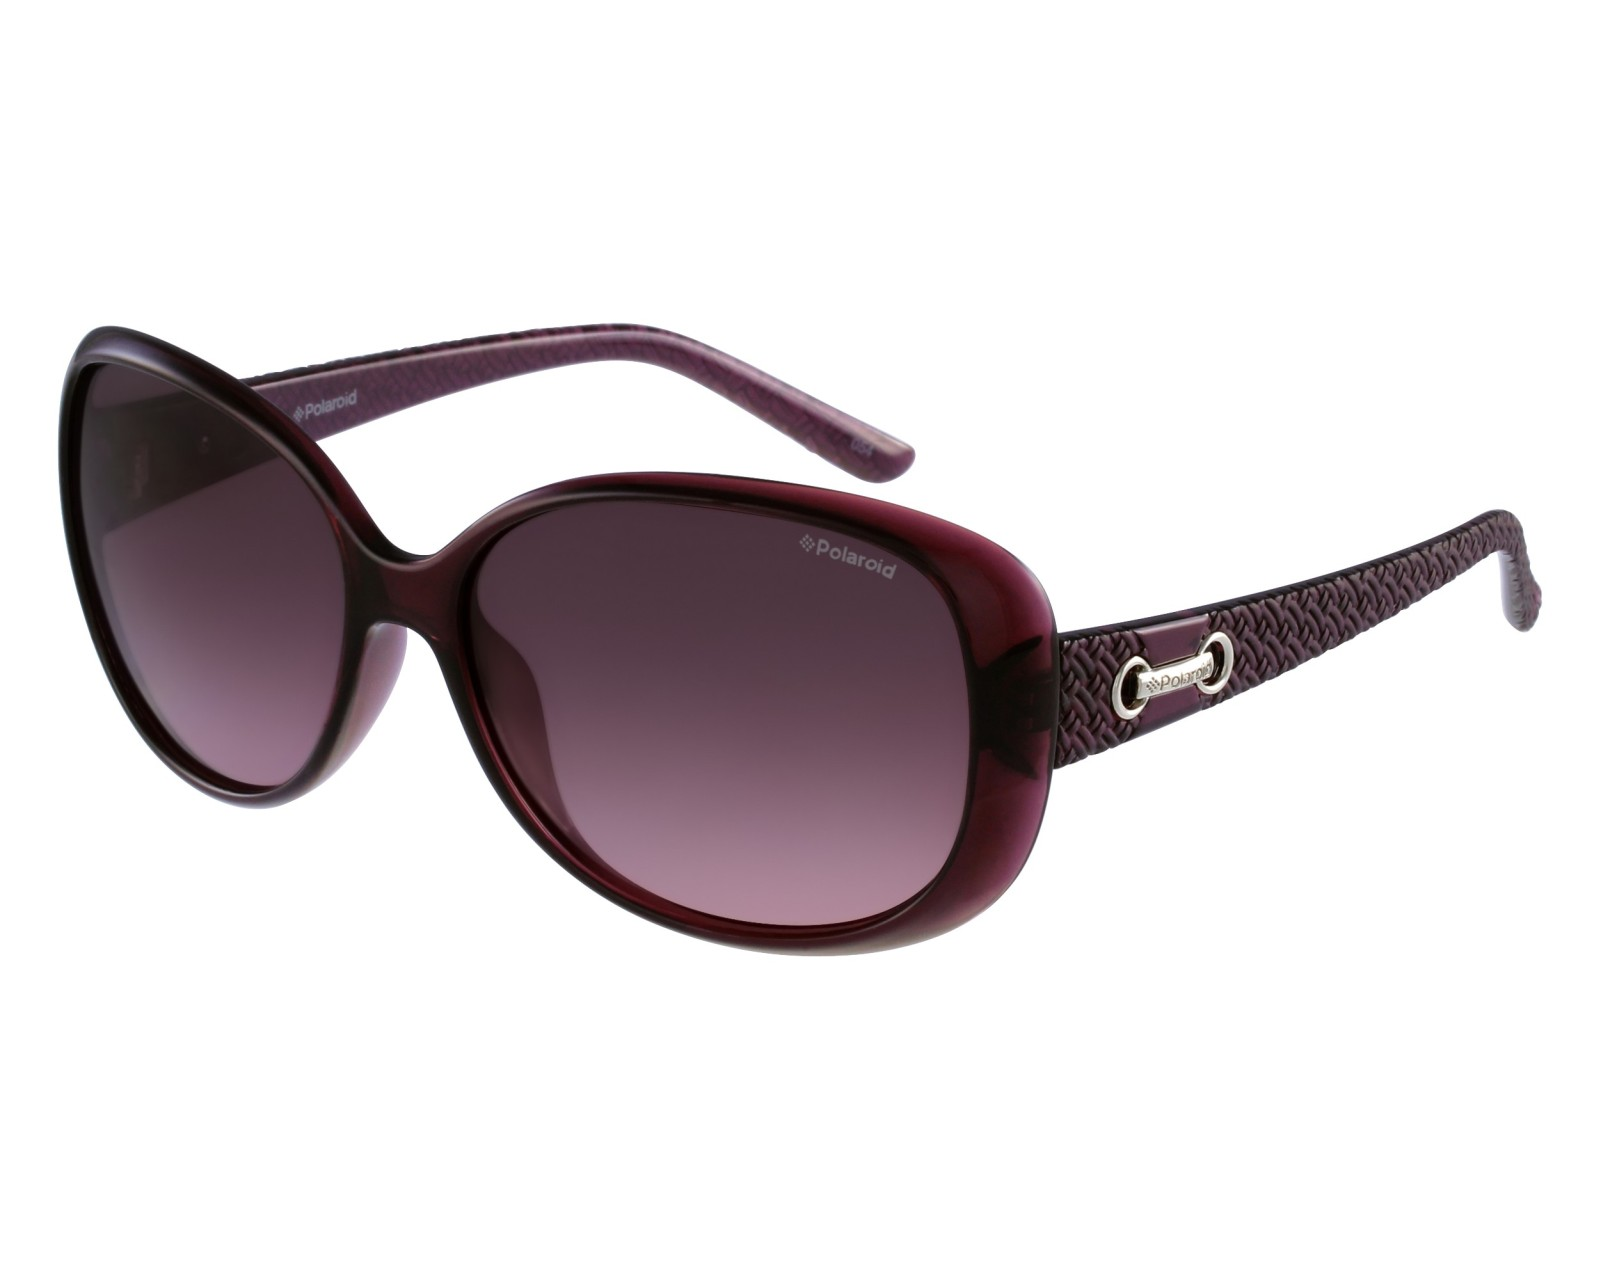 Polaroid Sunglasses P8430 C6T MR Purple Purple Gradient Polarized